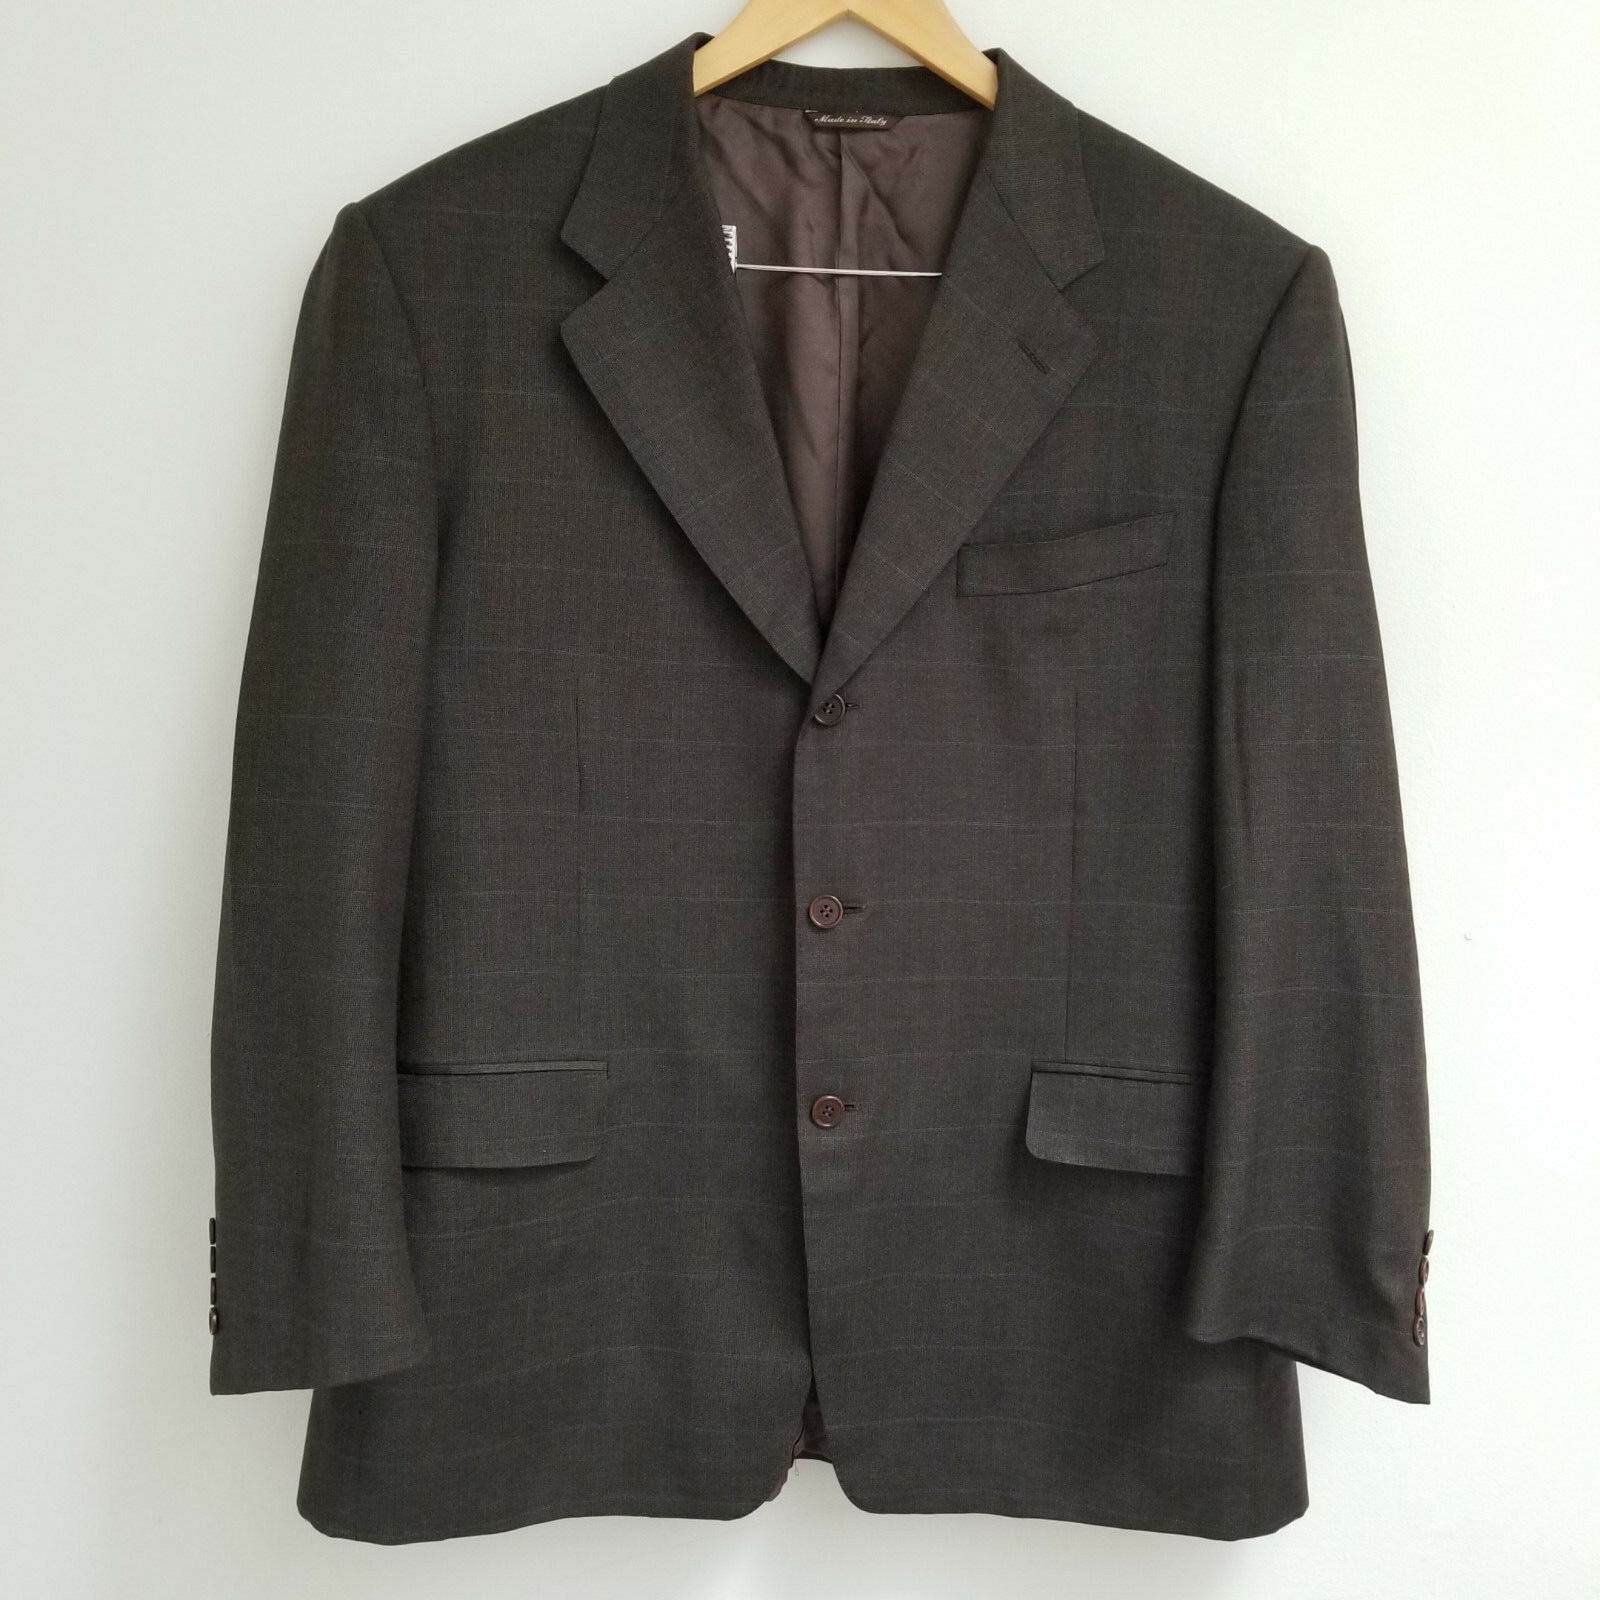 CANALI [Made for Harry pinkn] Brown with bluee Stripes Men Blazer and Pants.